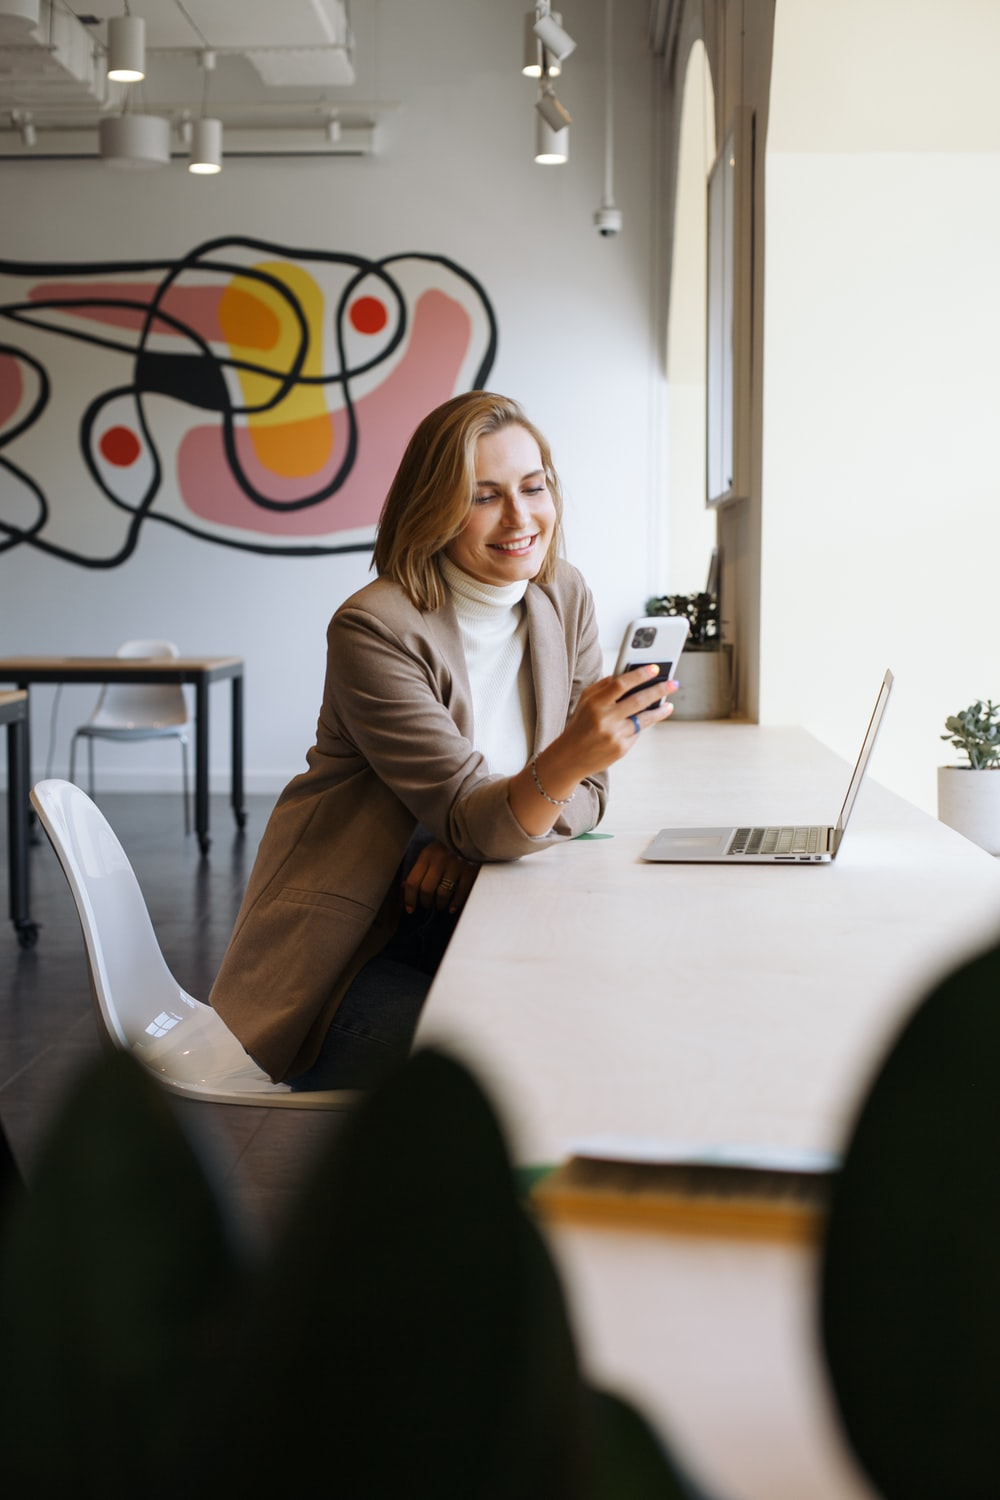 woman in brown blazer sitting on chair holding smartphone